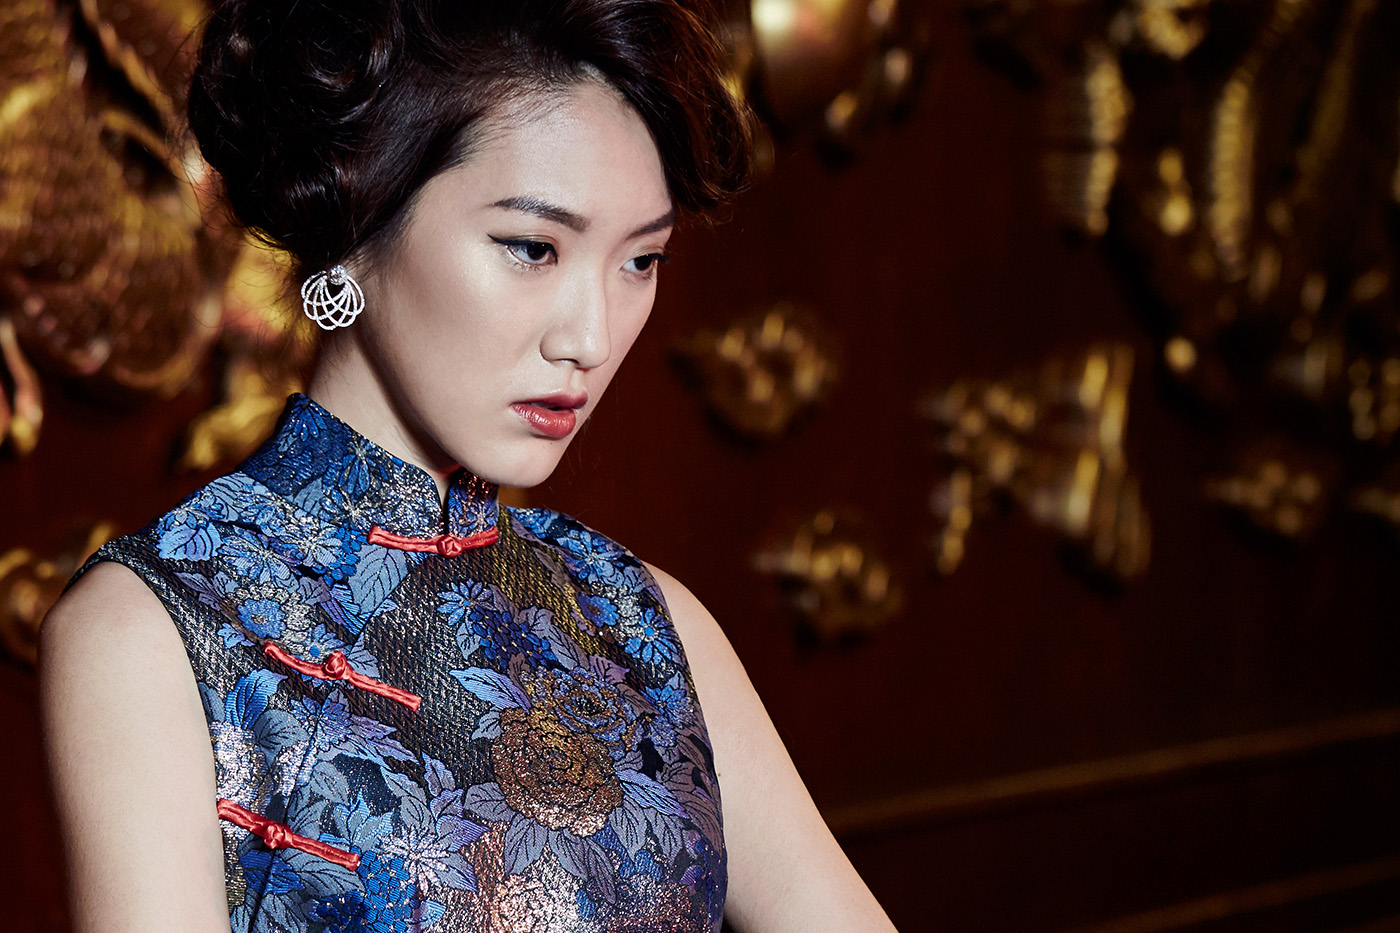 Reading The Qipao The Story Behind The Most Iconic Chinese Dress